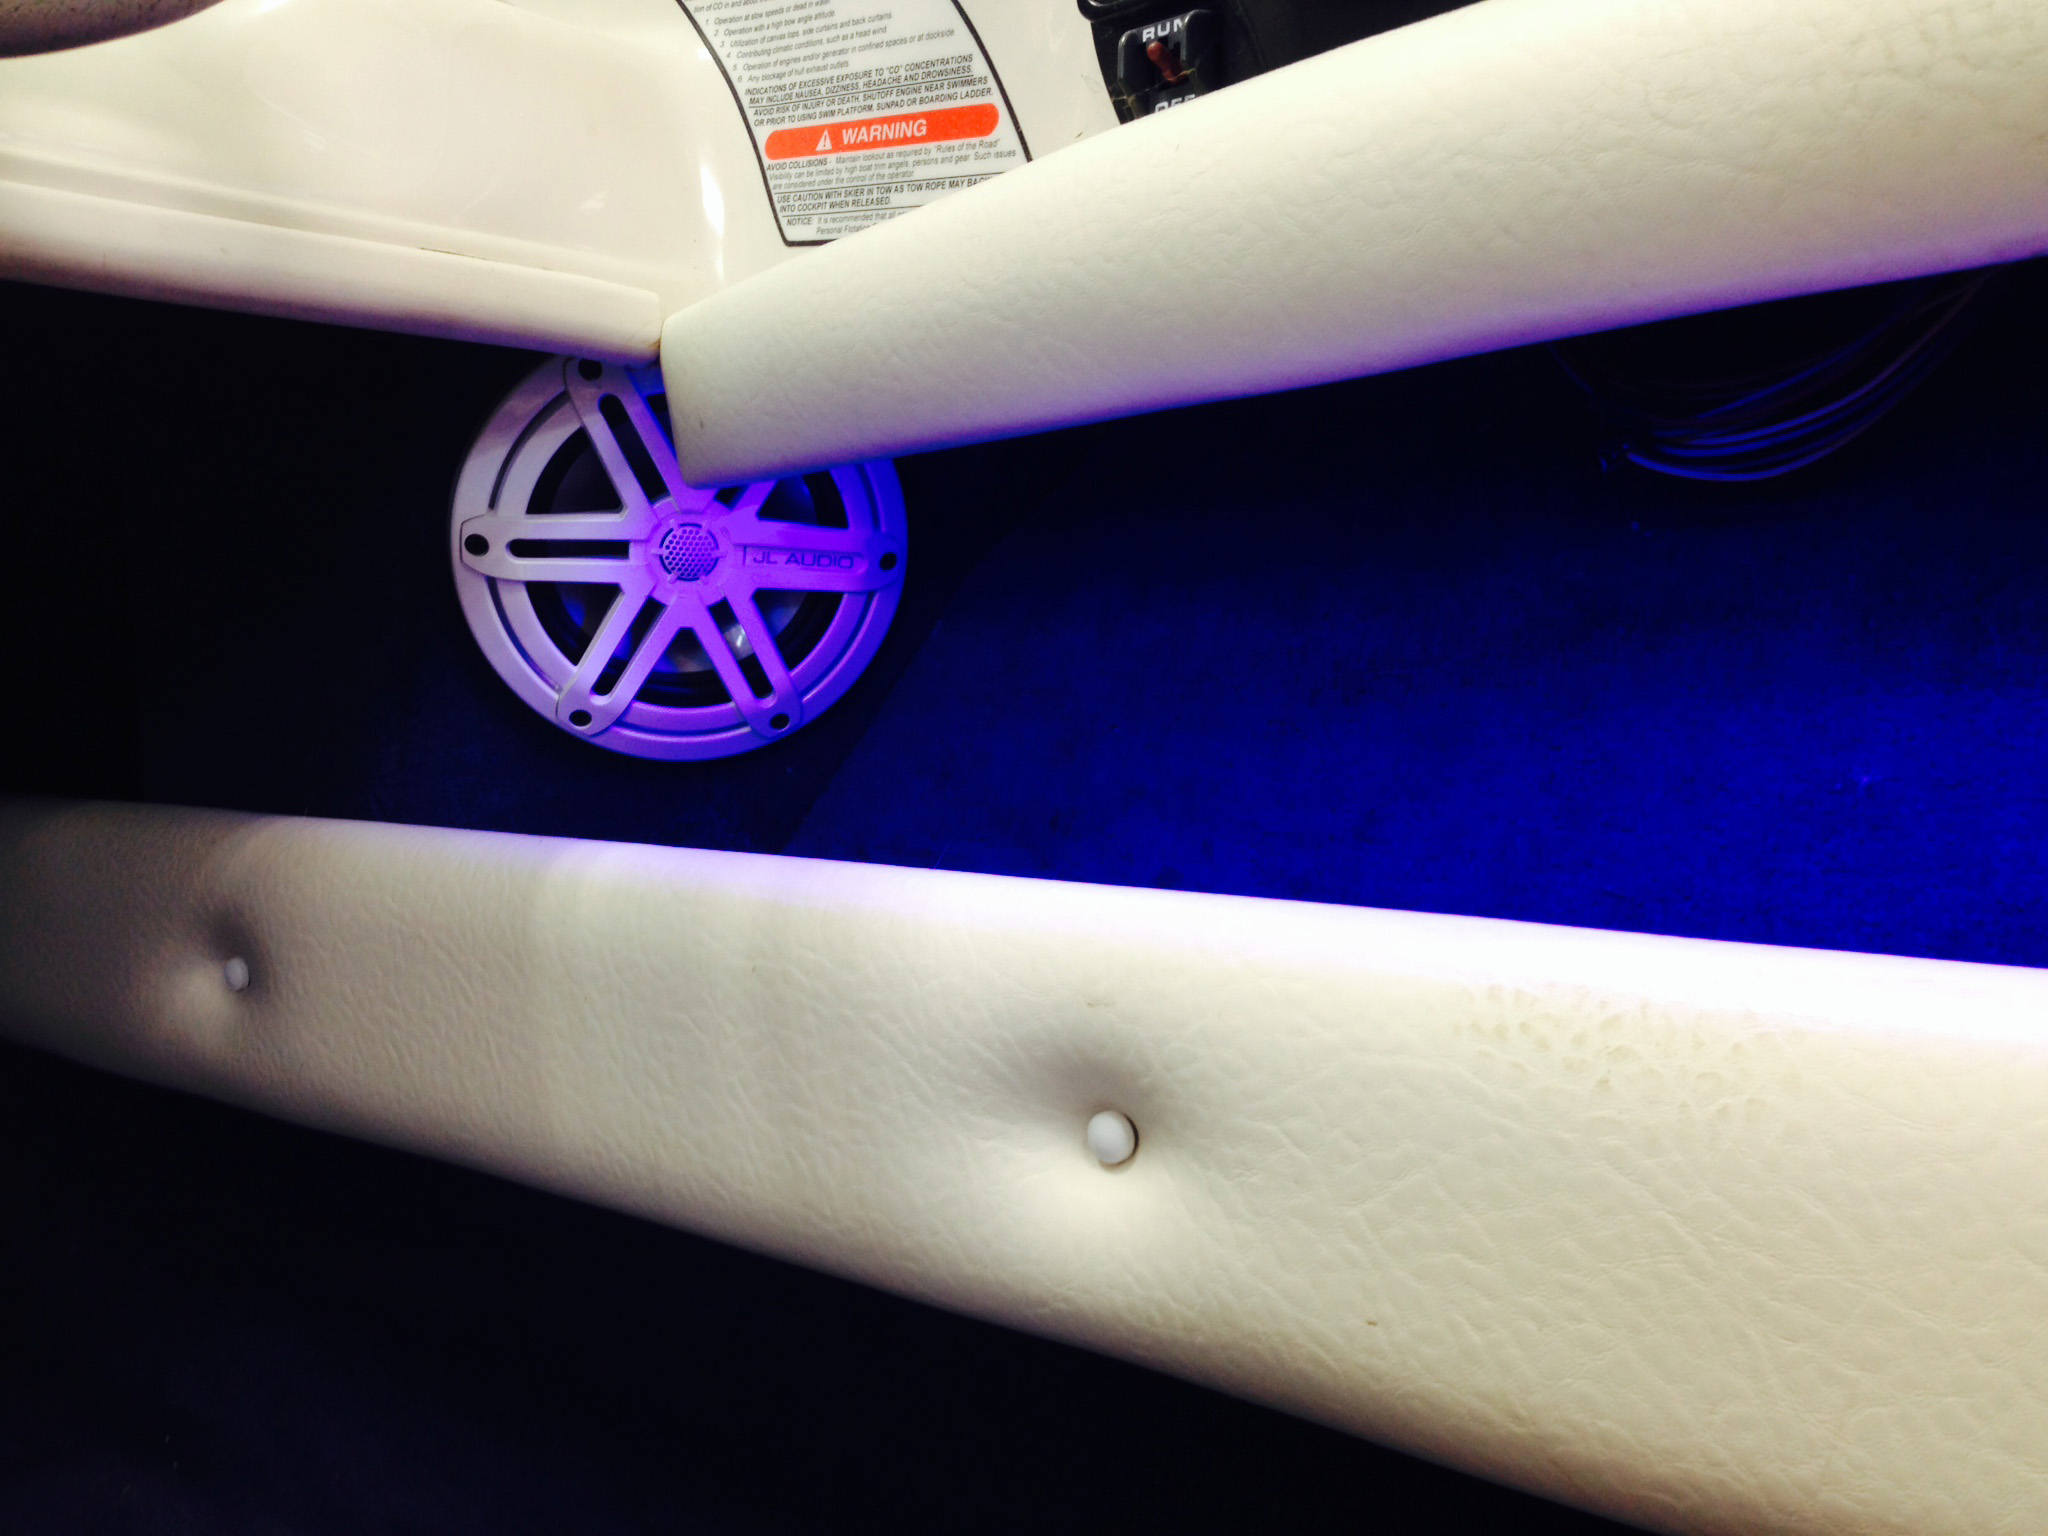 99 SeaRay - Interior LED Lighting & JL Audio MX-650 Speakers